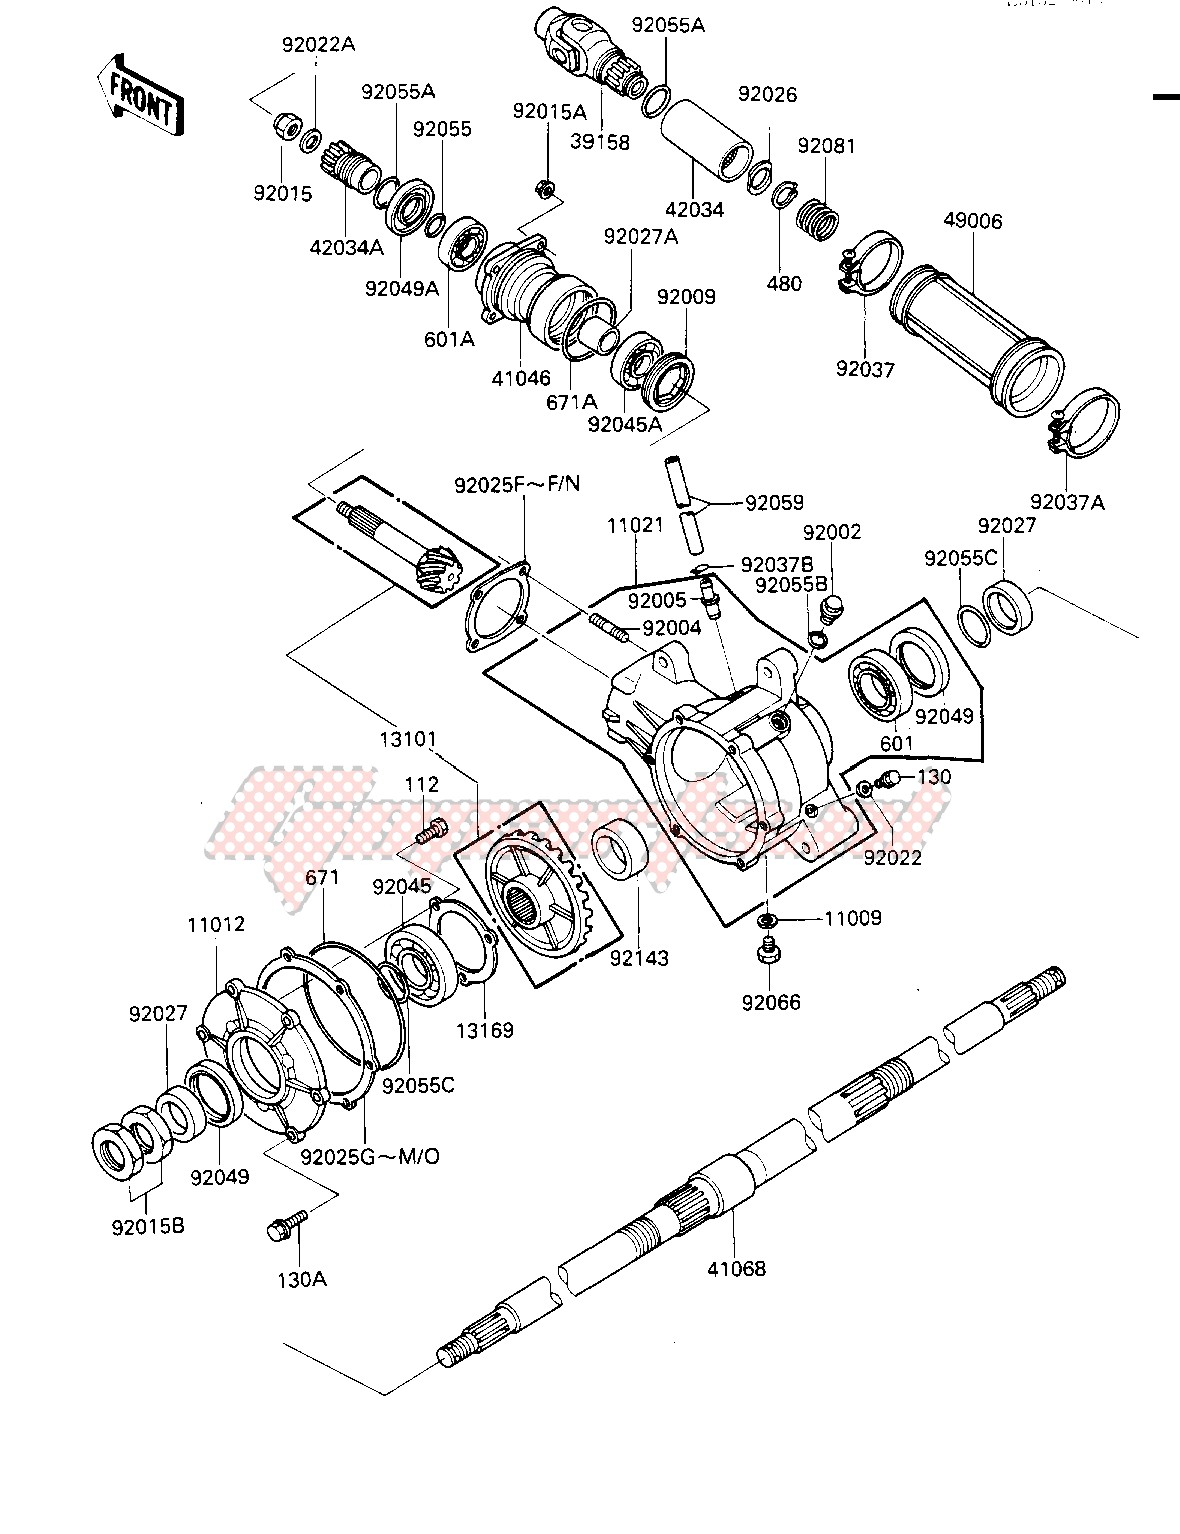 DRIVE SHAFT_FINAL GEARS image